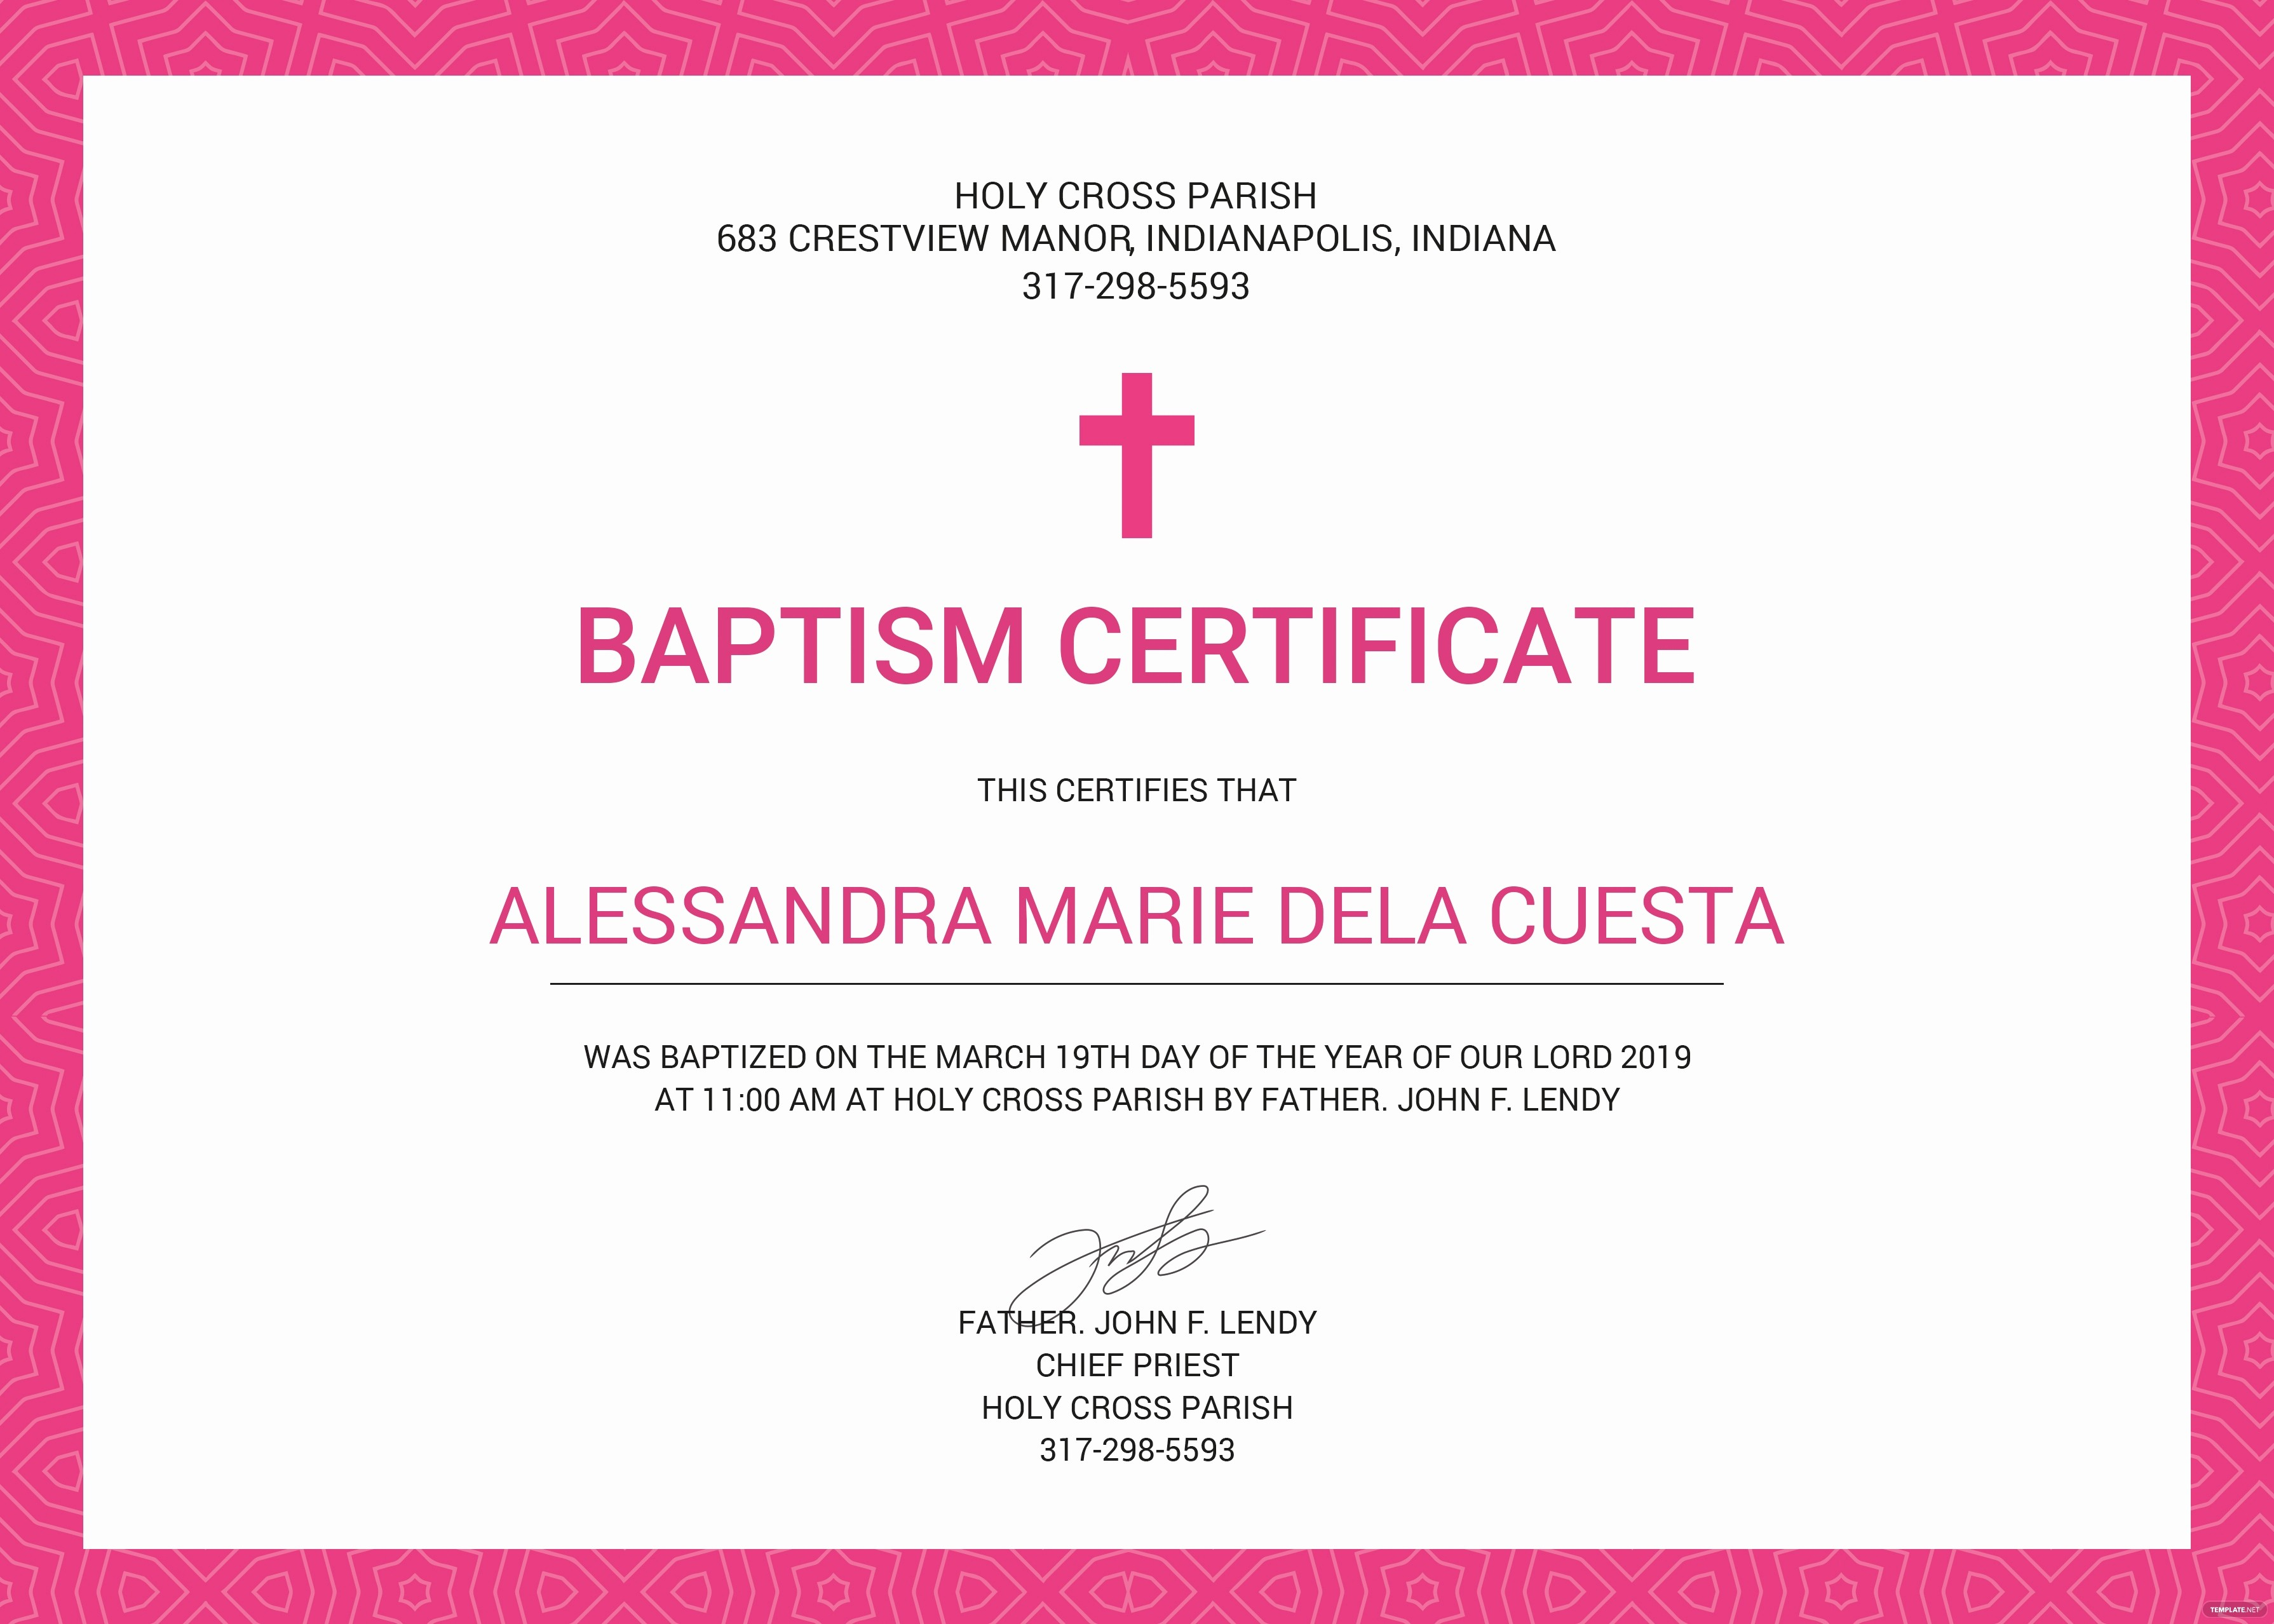 Free Baptism Certificate Template Word New Free Baptism Certificate Template In Psd Ms Word